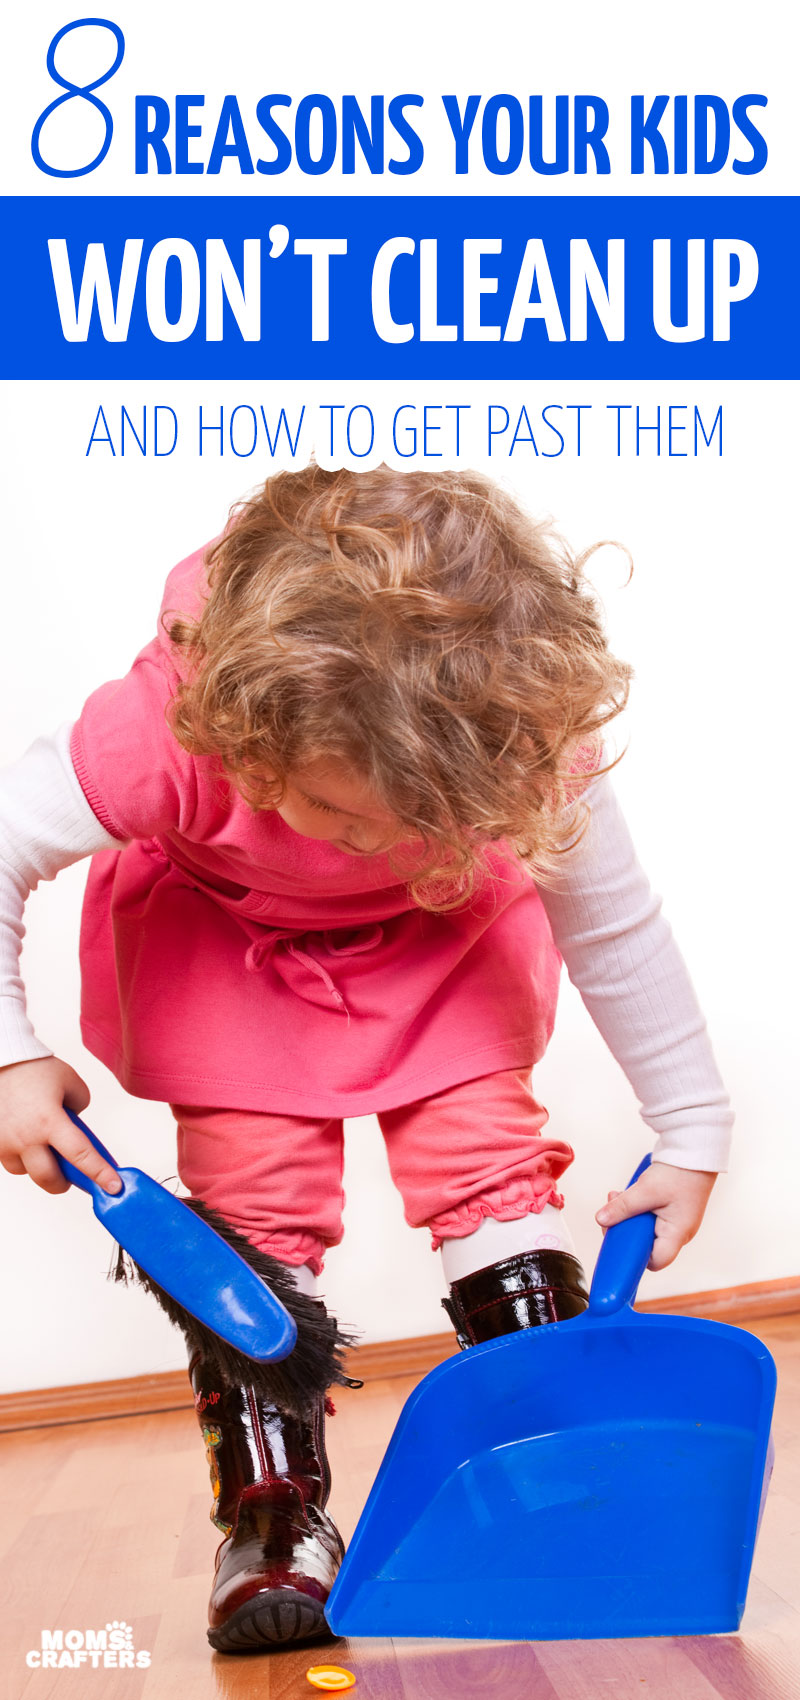 Click for 8 tips for getting kids to clean up and advice on how to get kids to do chores - especially two year olds, three year olds, four year olds, and five year olds. Includes reward chrat and incentive ideas too.